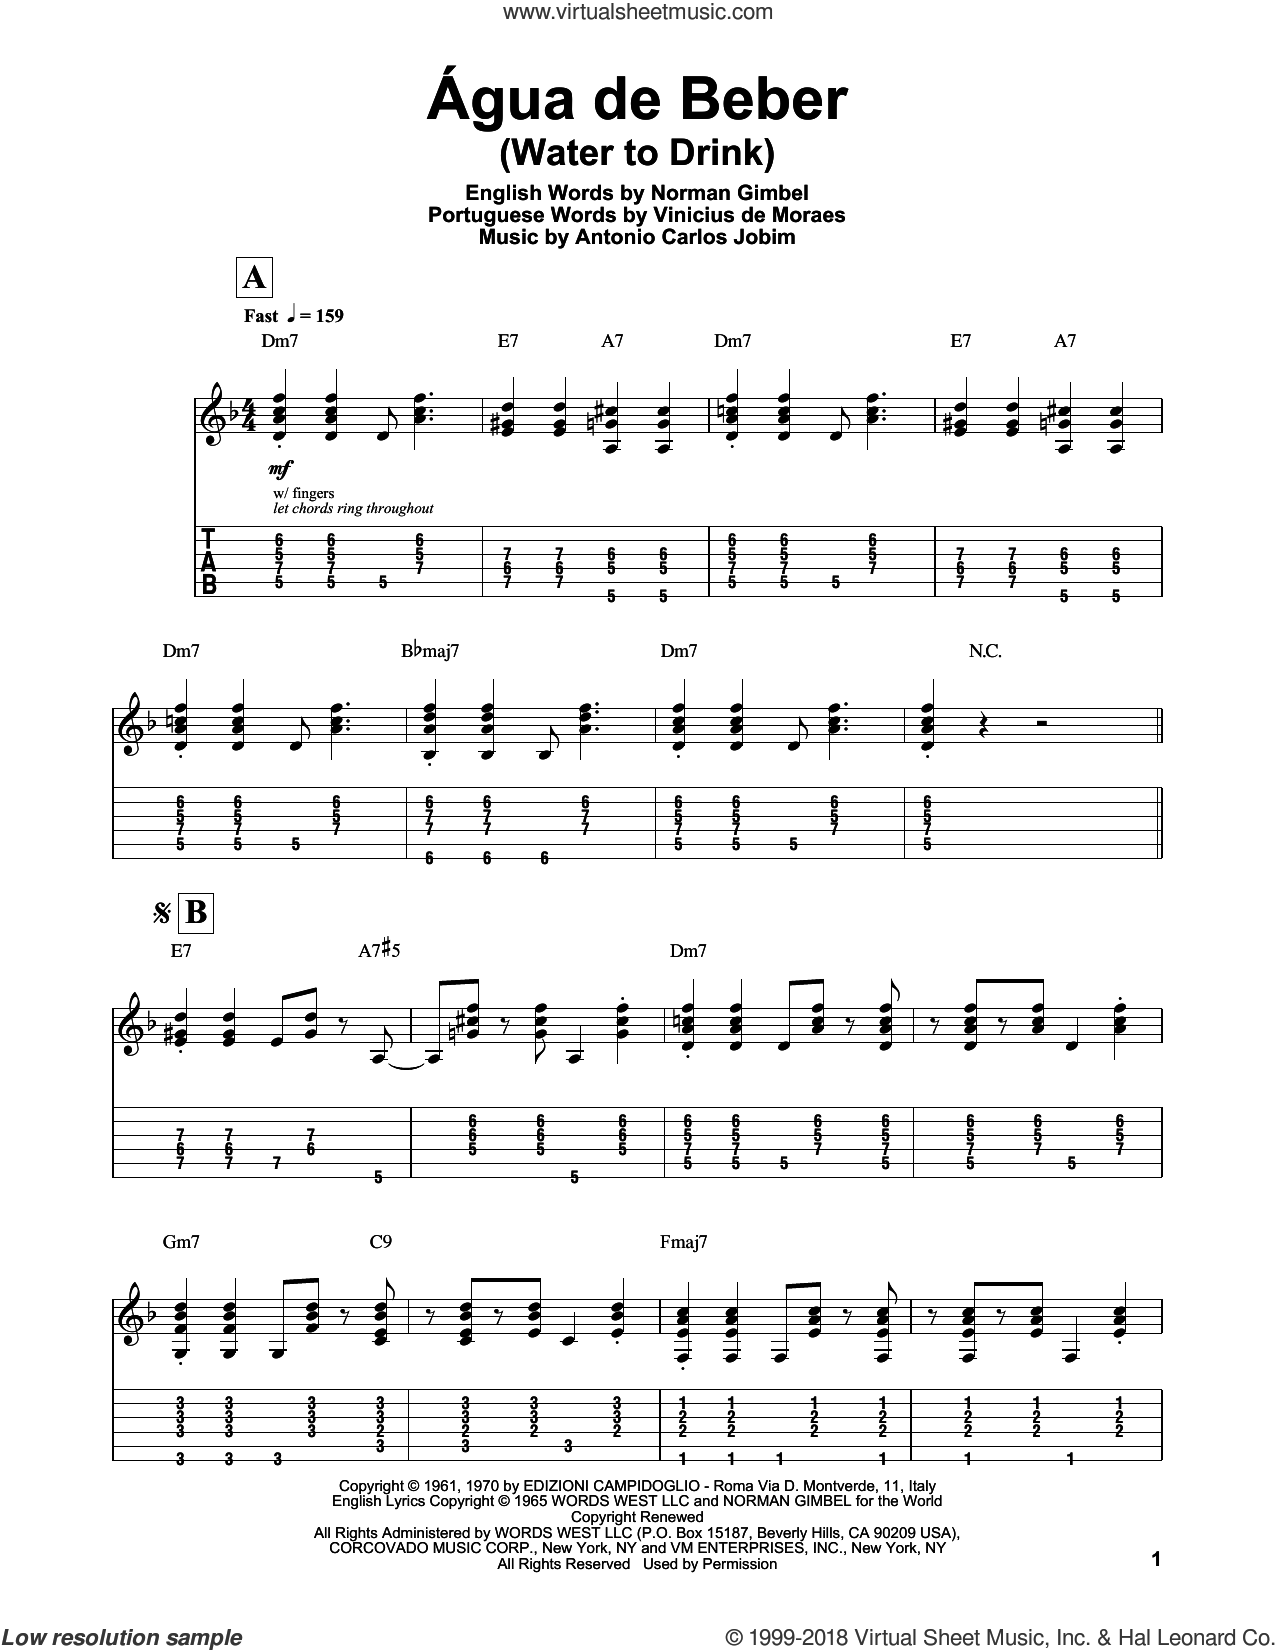 Agua De Beber (Water To Drink) sheet music for guitar (tablature, play-along) by Norman Gimbel, Antonio Carlos Jobim and Vinicius de Moraes, intermediate